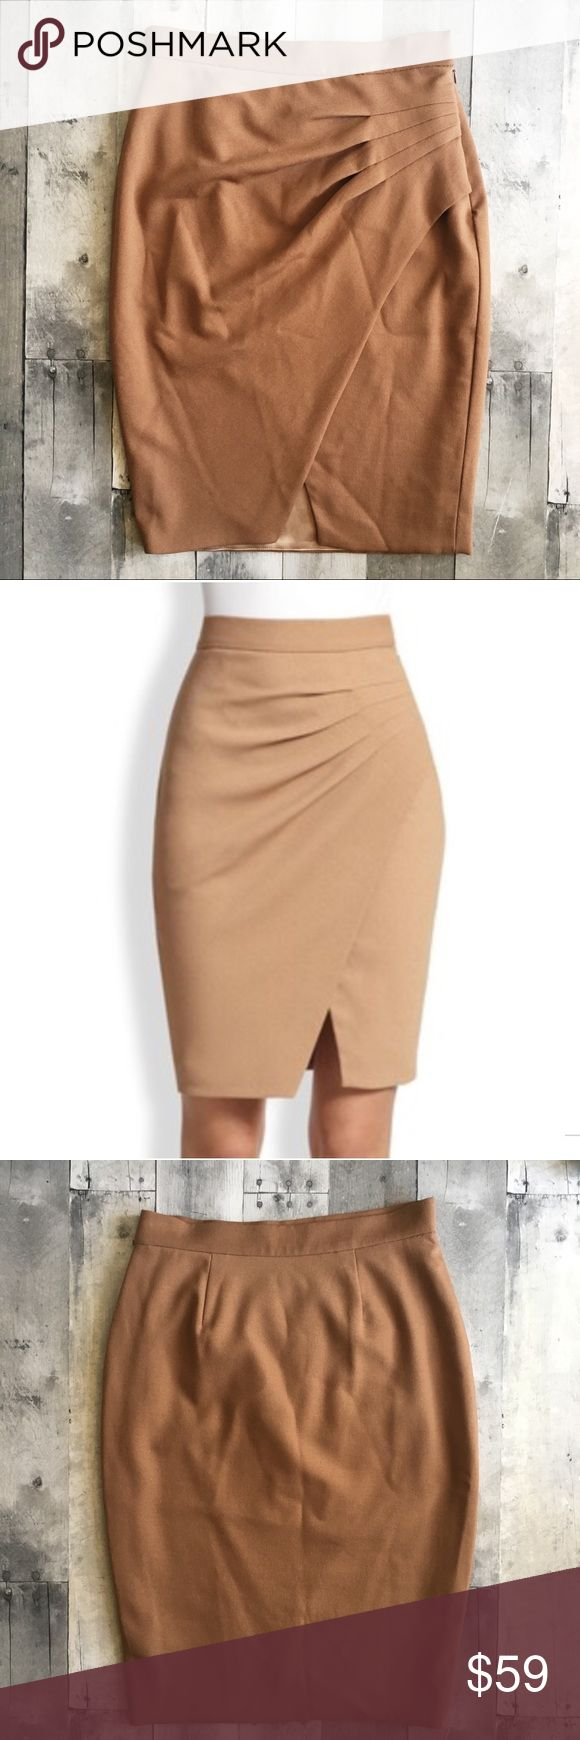 "L'Agence Asymmetric Draped-Pleat Wrap-Effect Skirt L'Agence pencil skirt with a figure-flattering silhouette. Side pleats wrap around at an angle forming an asymmetric drape. Moderately high waist. Tan / camel. This skirt is modest enough for work but also loves to party on a night out or dress up for a wedding! Outer shell: polyester/viscose/wool/Lycra blend. Lining: polyester/spandex. Size 4. Approximate measurements when laid flat: waist 13.5"", hips 17.5"", length 23"". Side zipper, hook…"